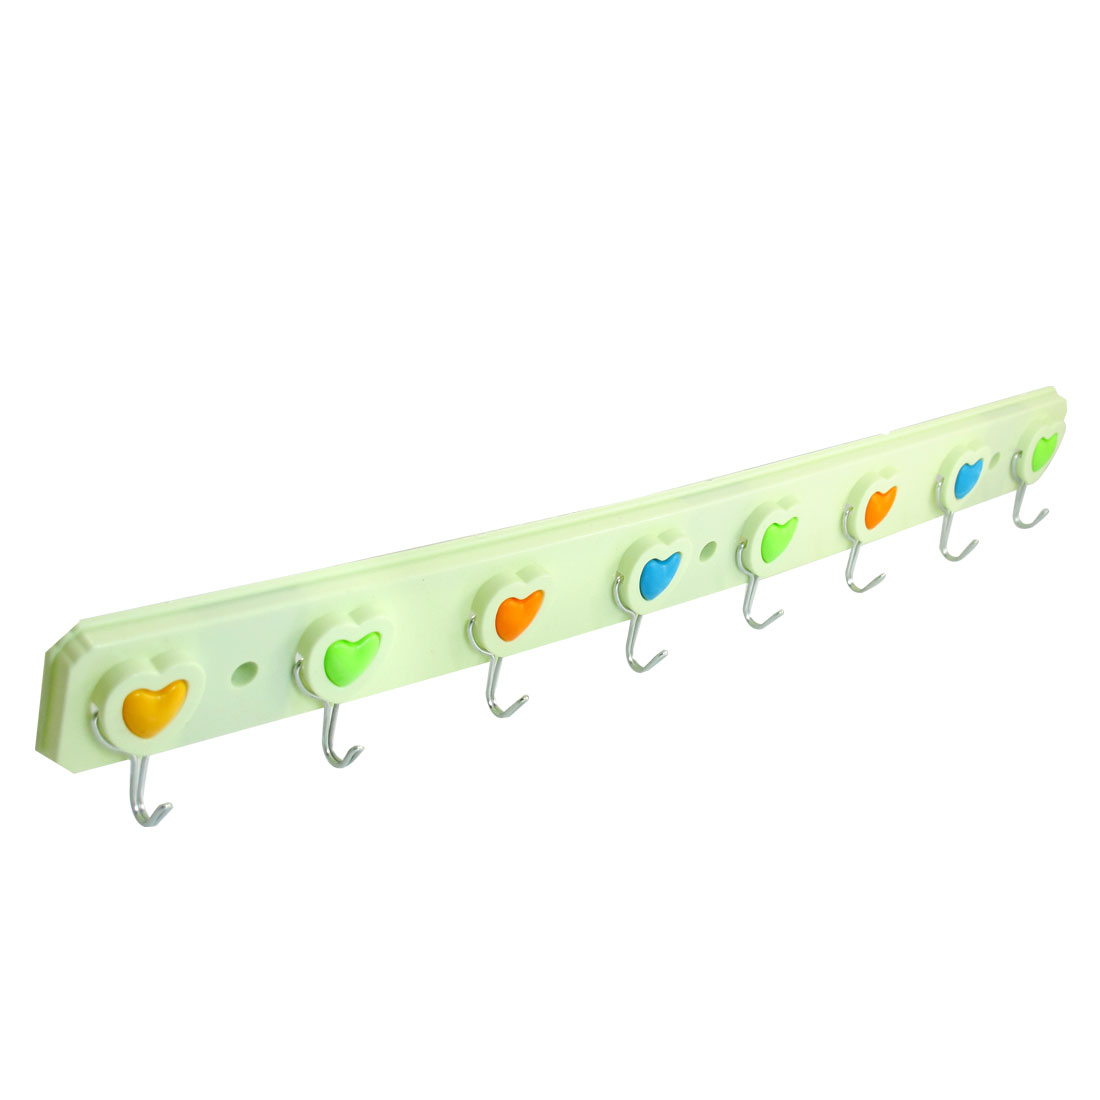 Bathroom Self Adhesive Back 8 Metal Hooks Towel Wall Hanger Light Green